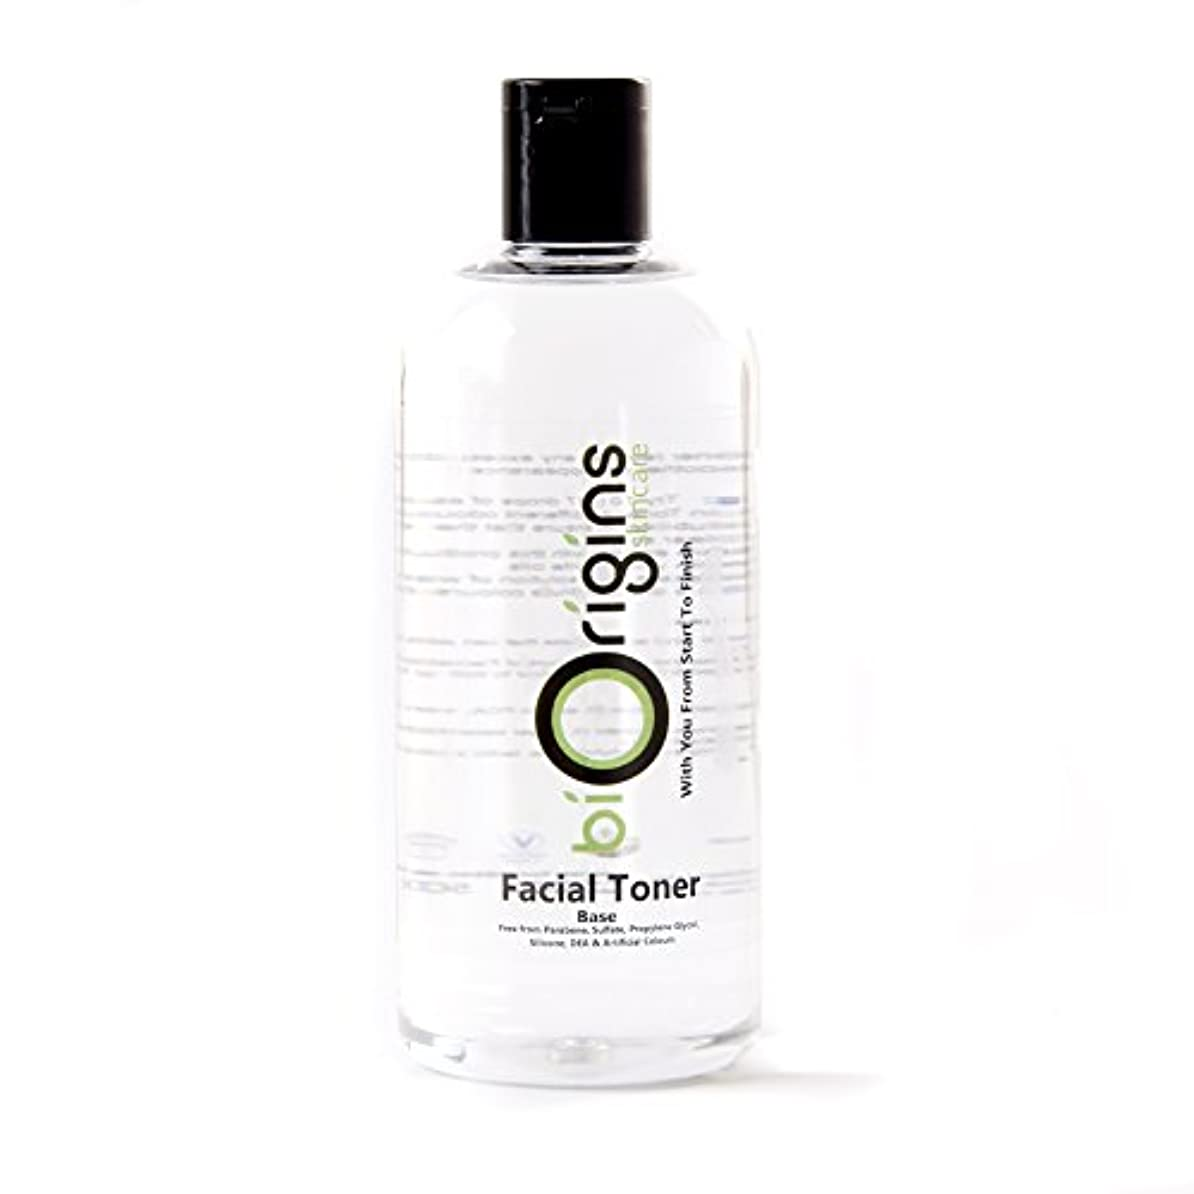 馬鹿げた避ける直感Facial Toner - S&P Free - Botanical Skincare Base - 1Kg